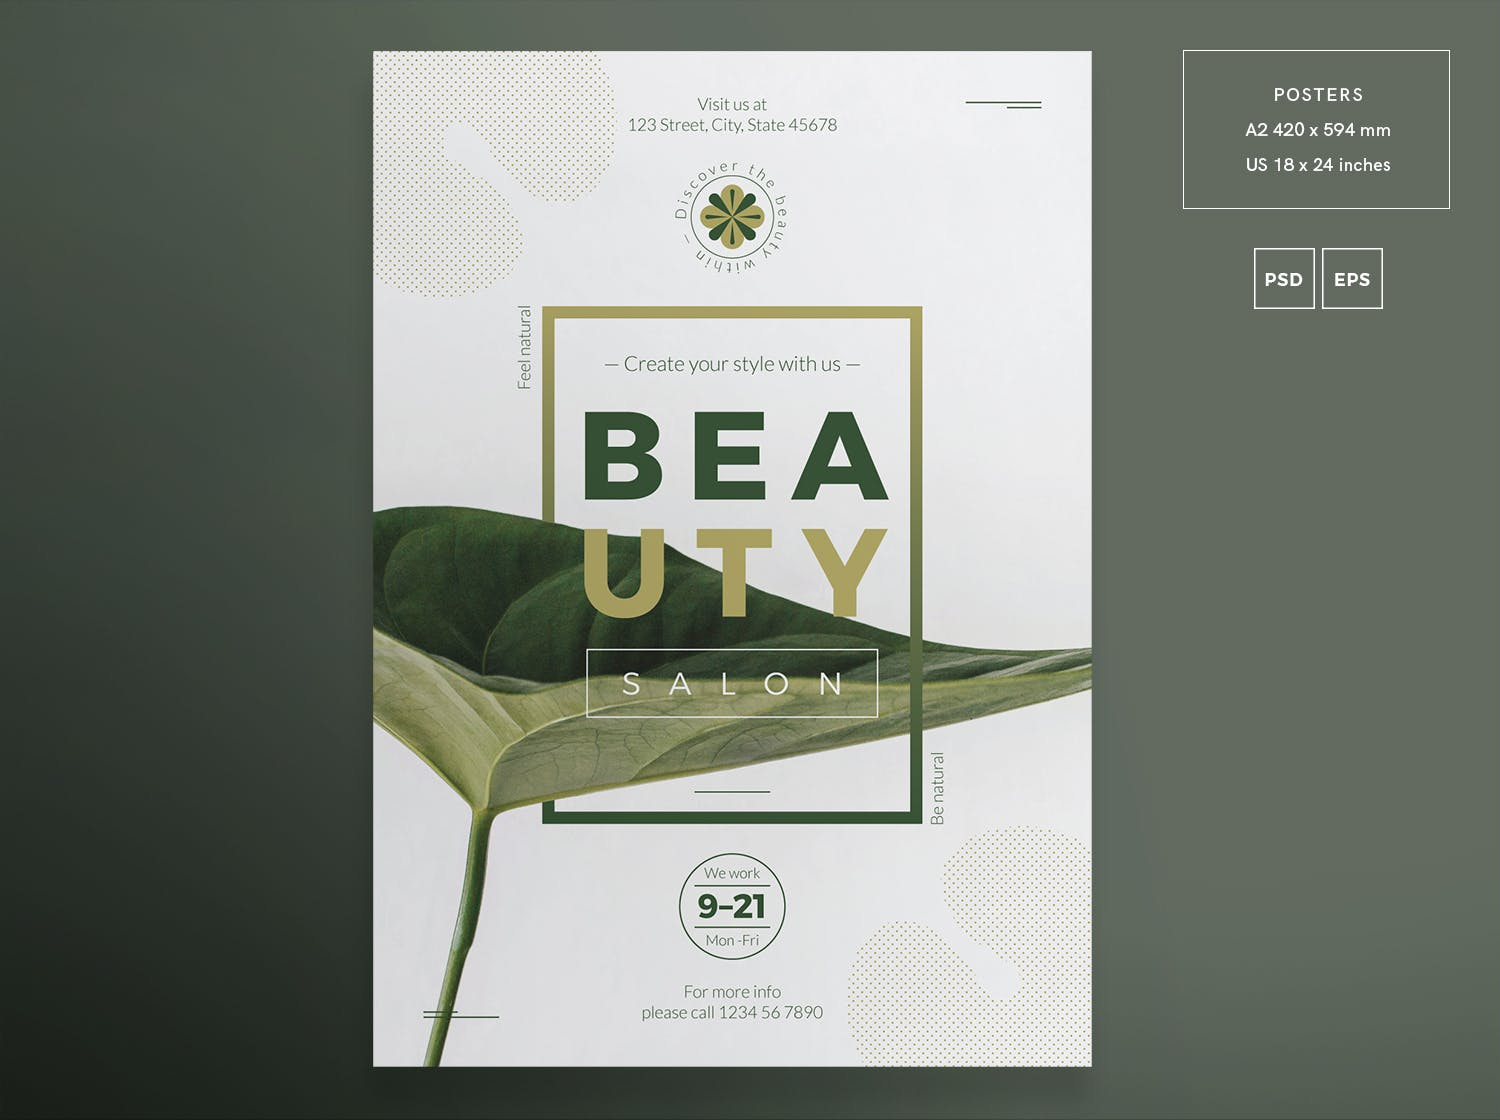 时尚创意海报模板展示Beauty Salon Flyer and Poster Template Eddk64